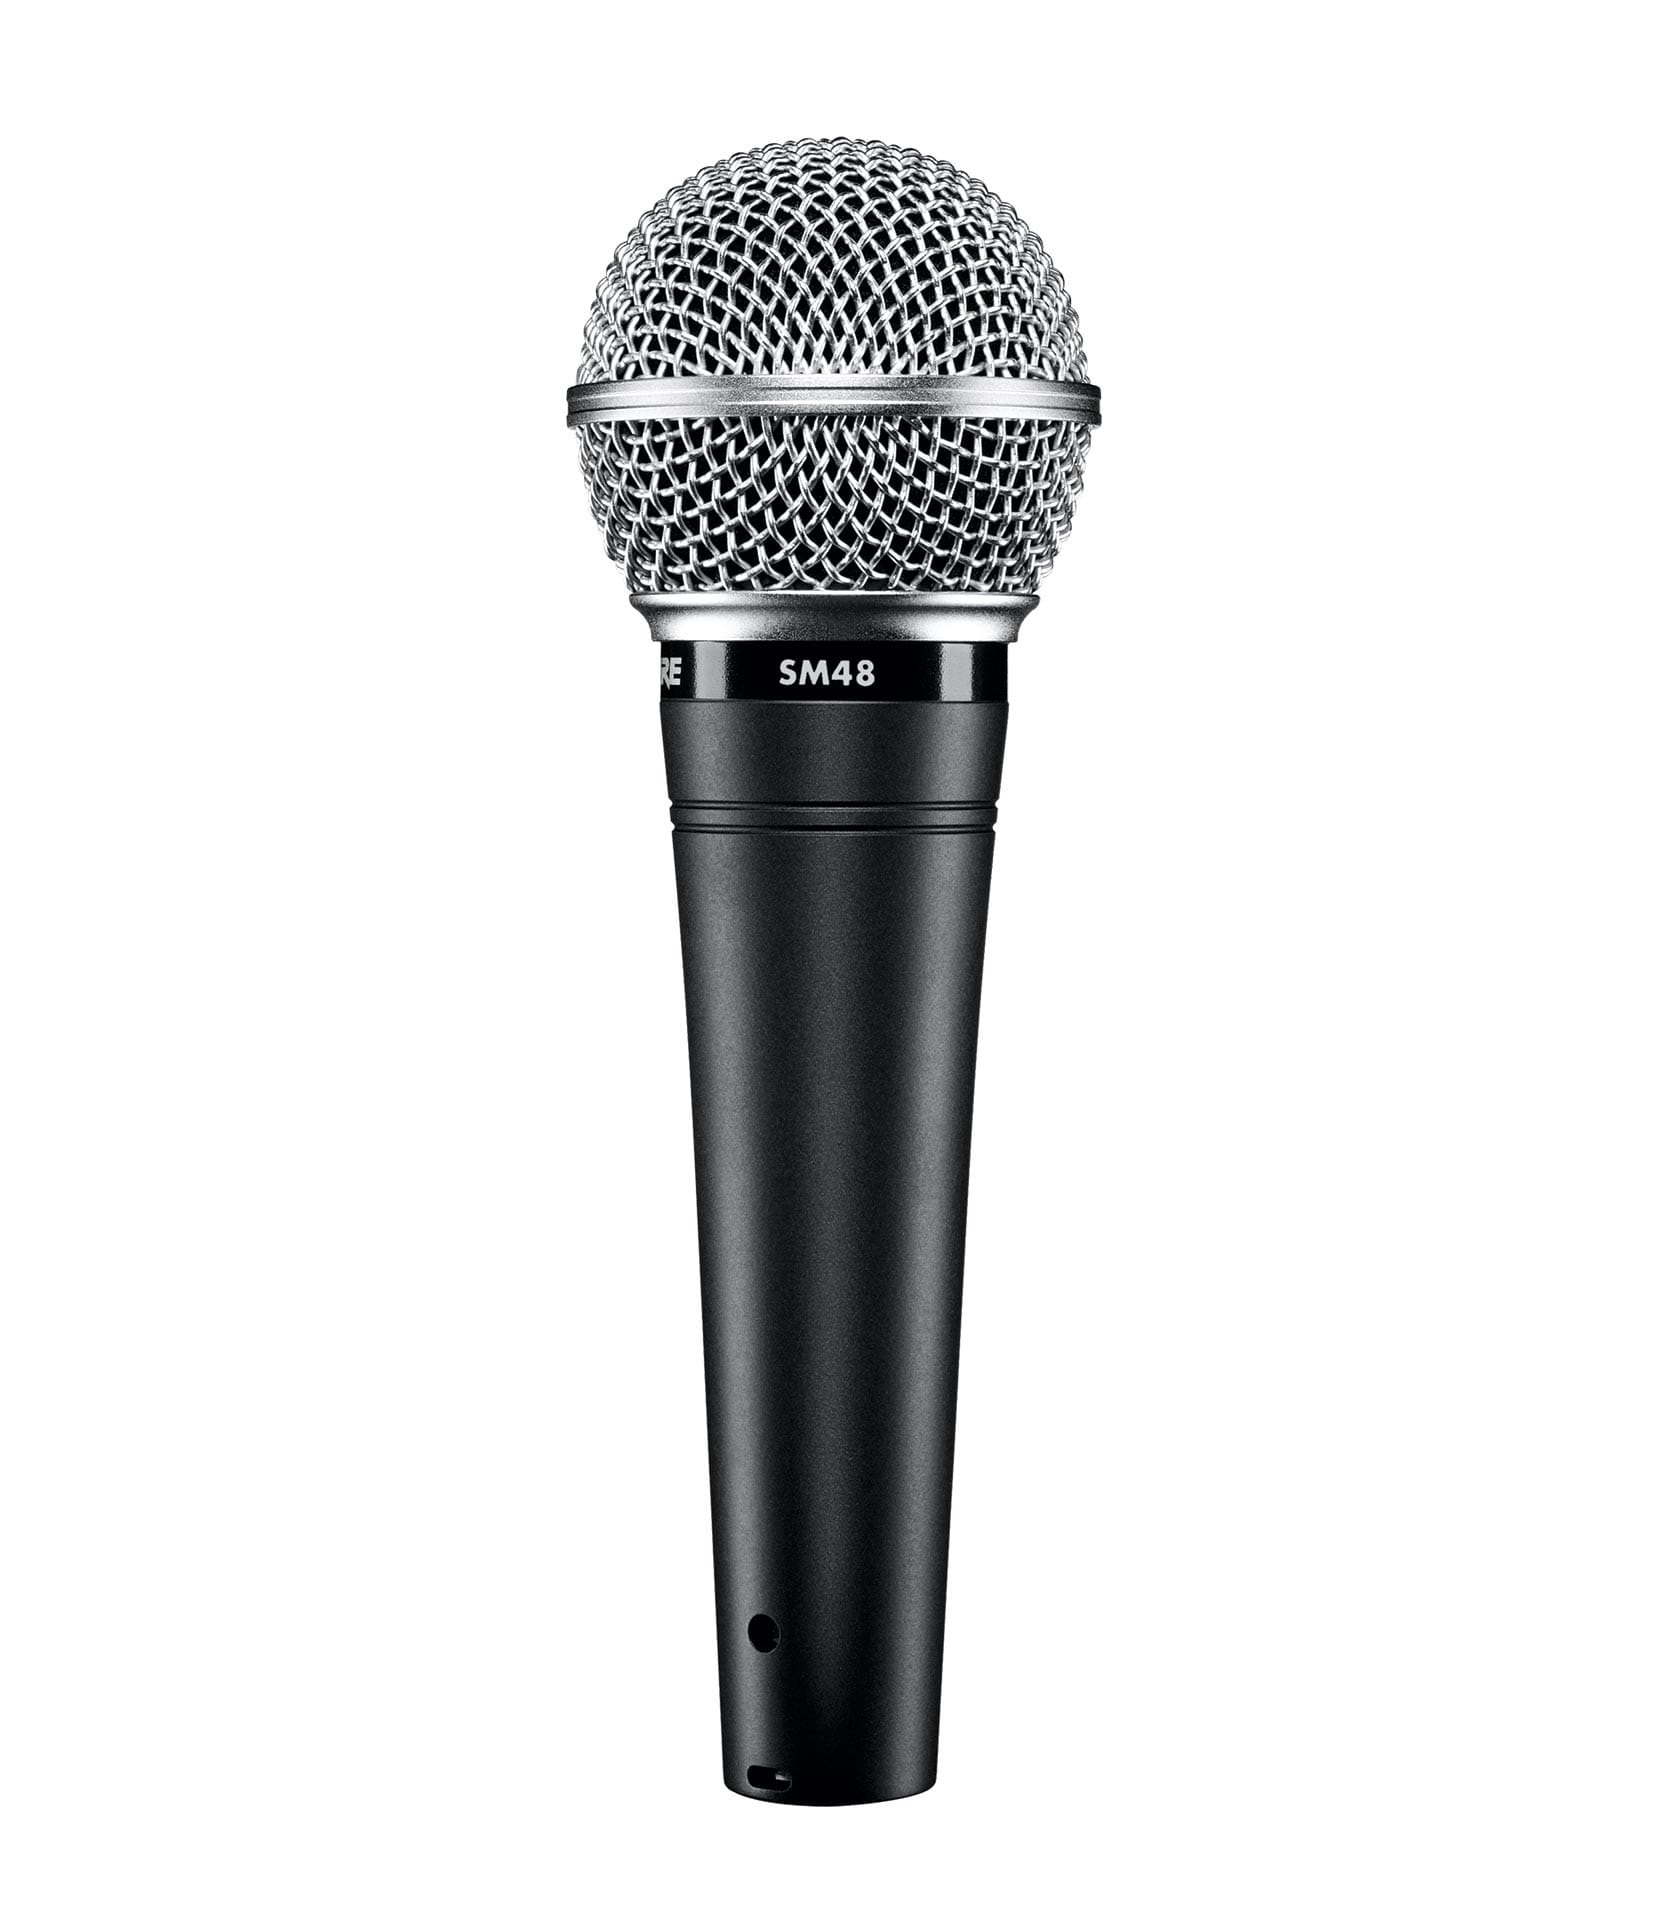 Buy Shure - SM48LC Vocal Dynamic Cardioid Microphone